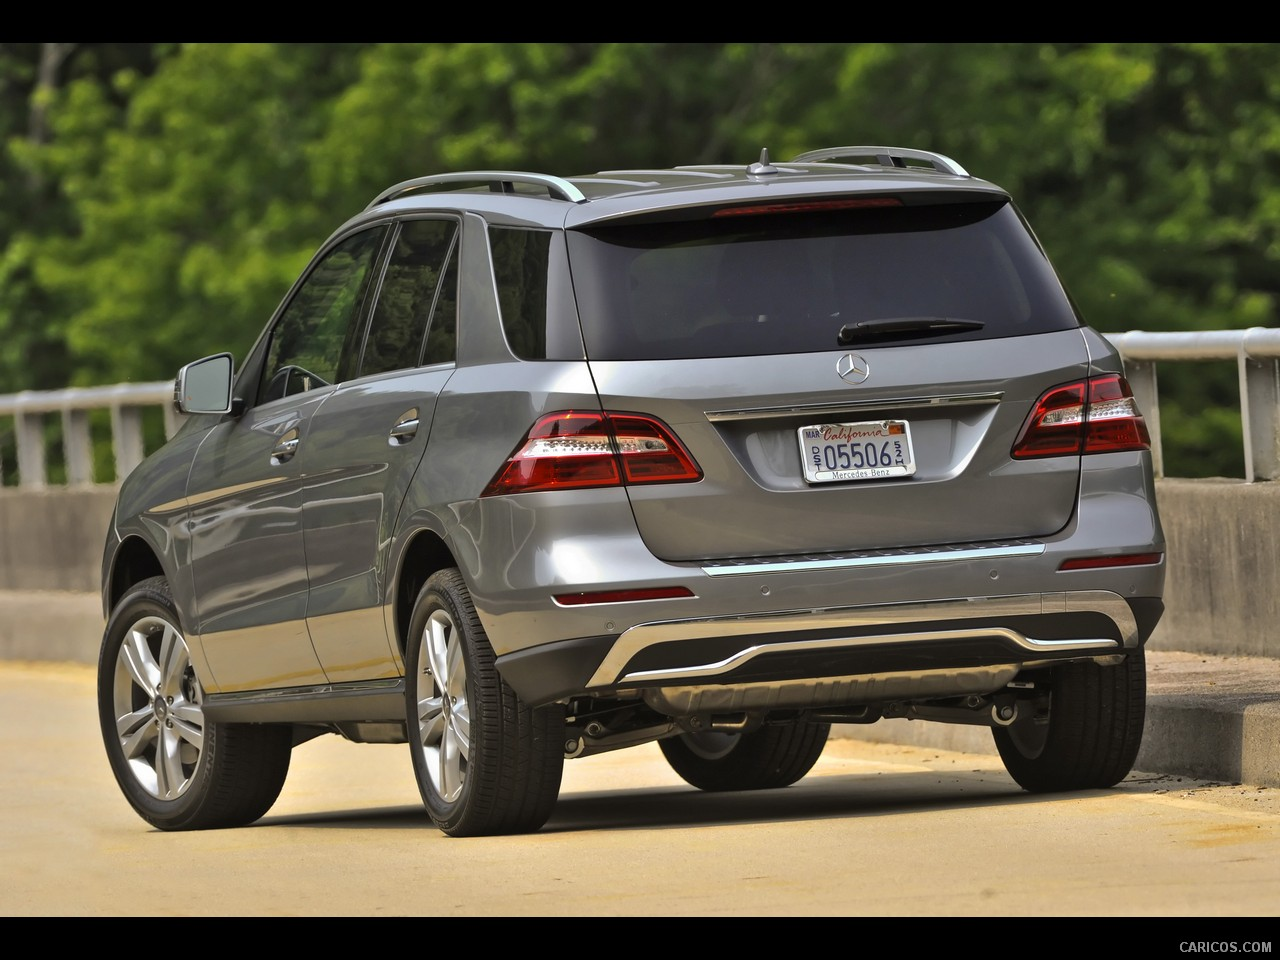 Mercedes benz ml 350 new era leasing for Mercede benz financial